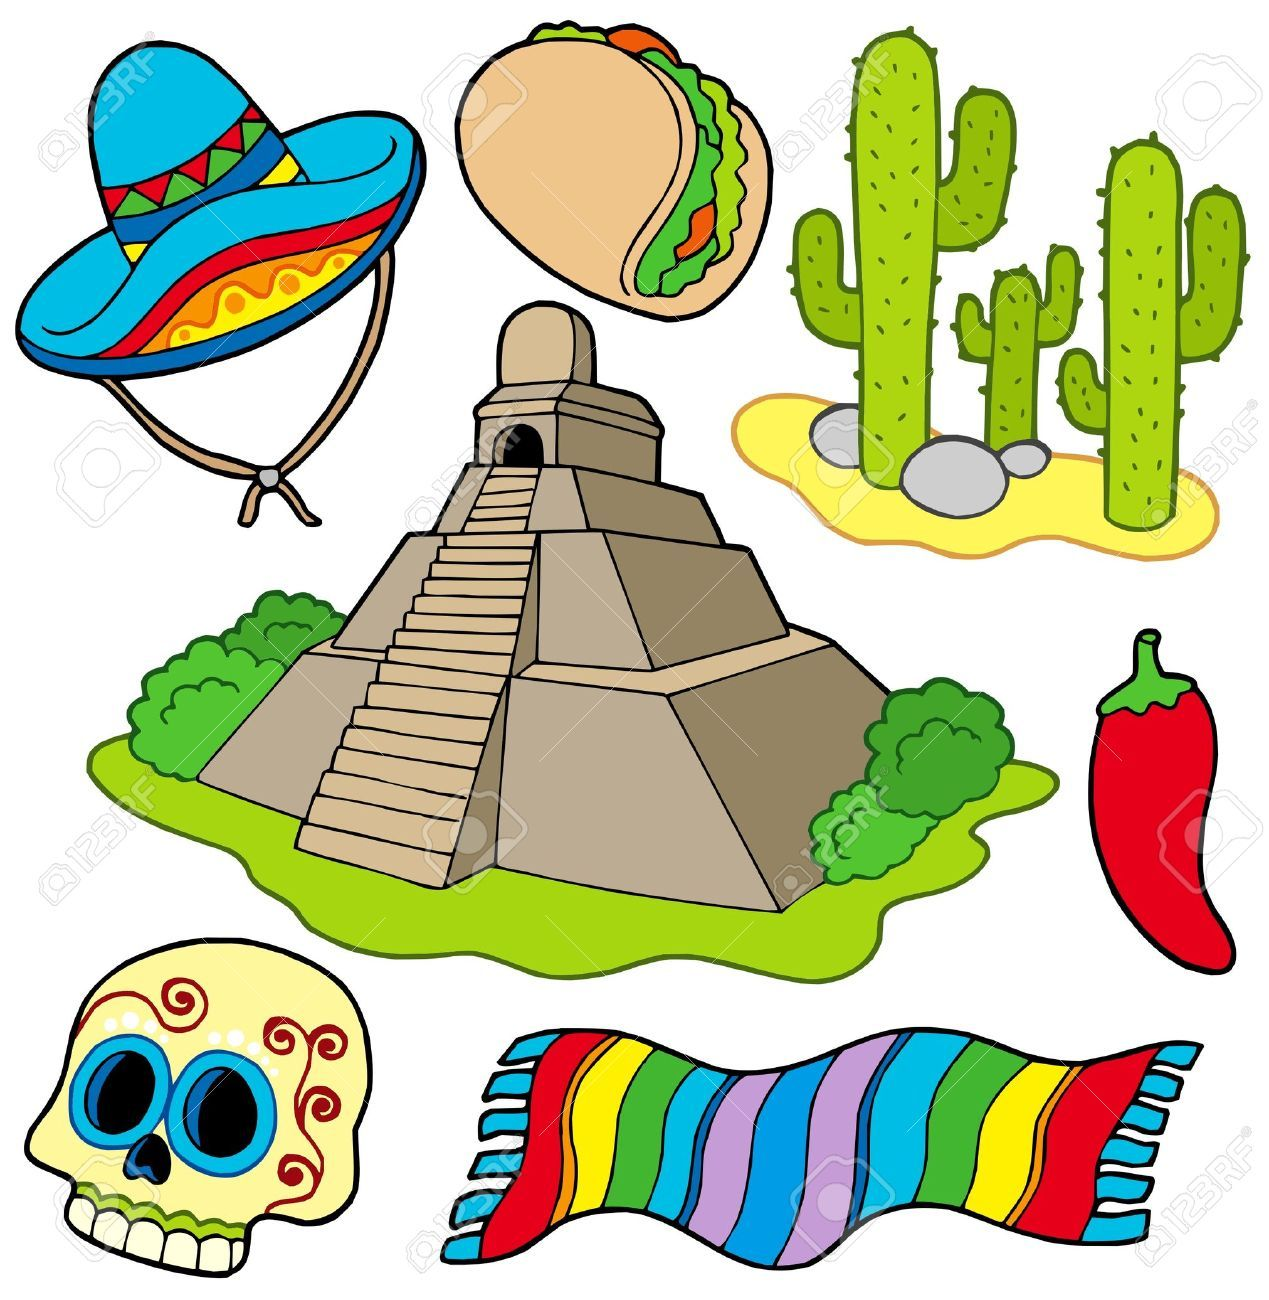 Smothered clipart image black and white library Mexican Culture Clipart   mexican culture   Mexican, Clip ... image black and white library